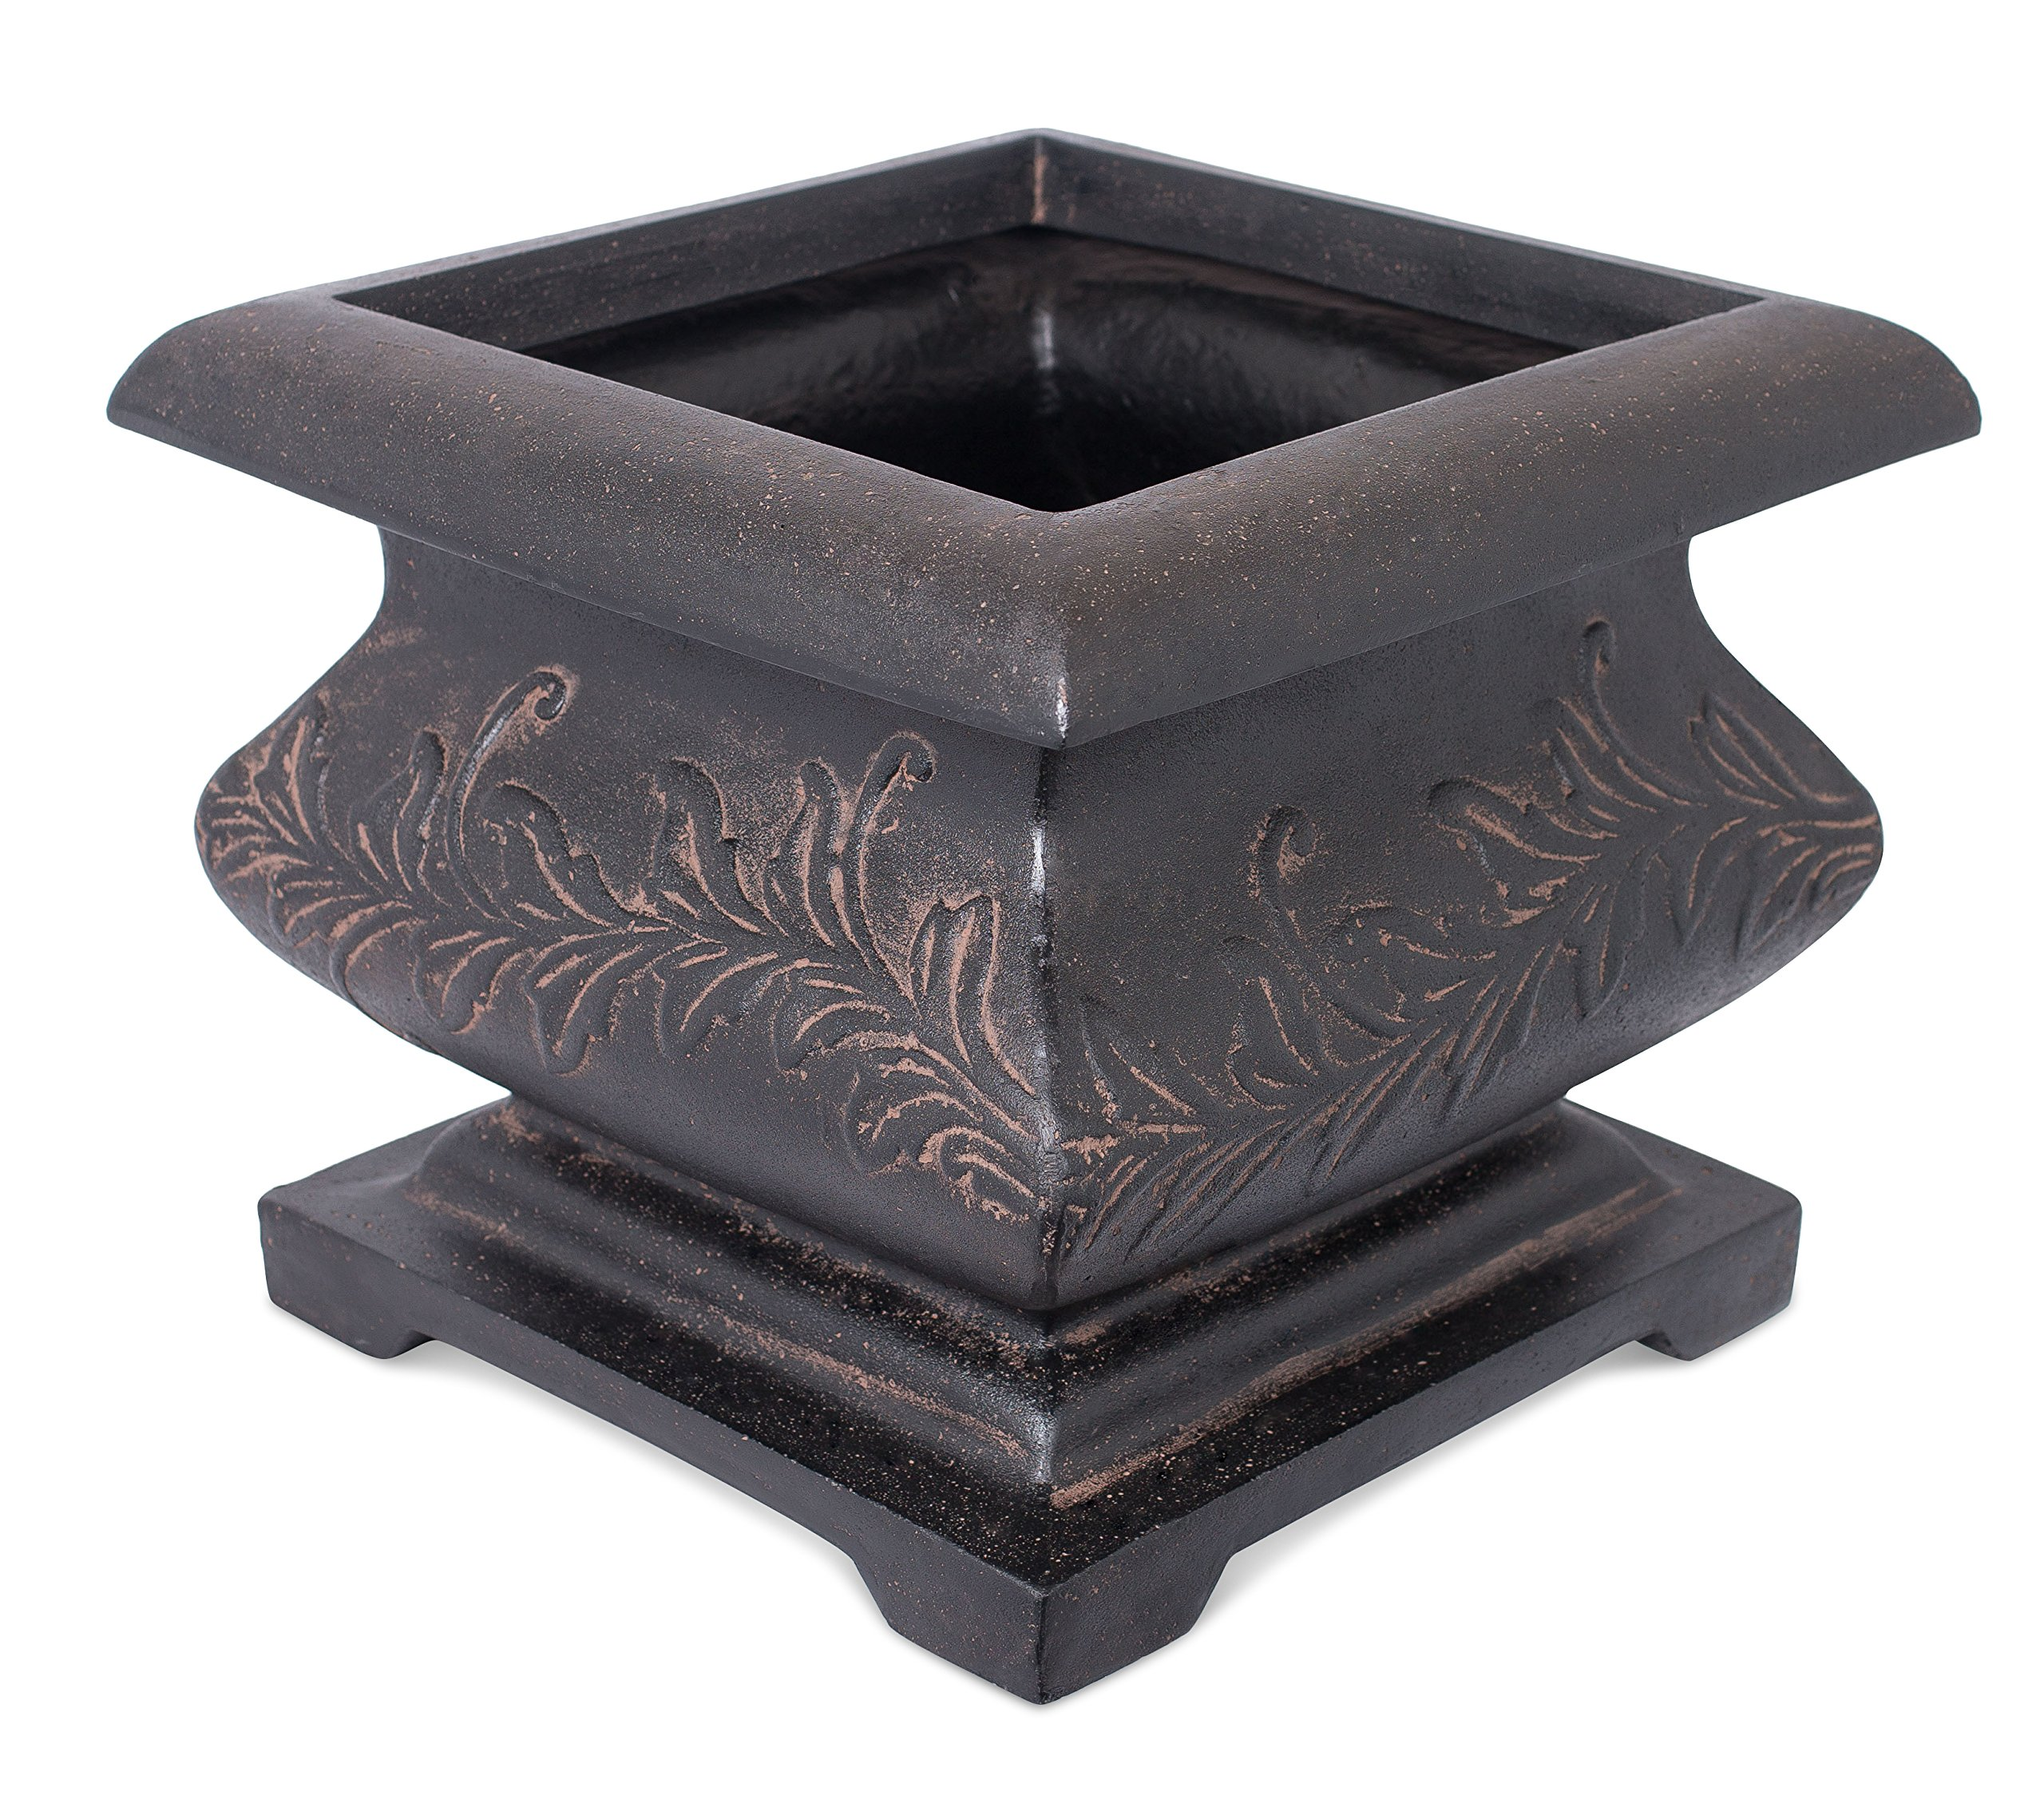 "BirdRock Garden 21"" Square Bomb Planter 